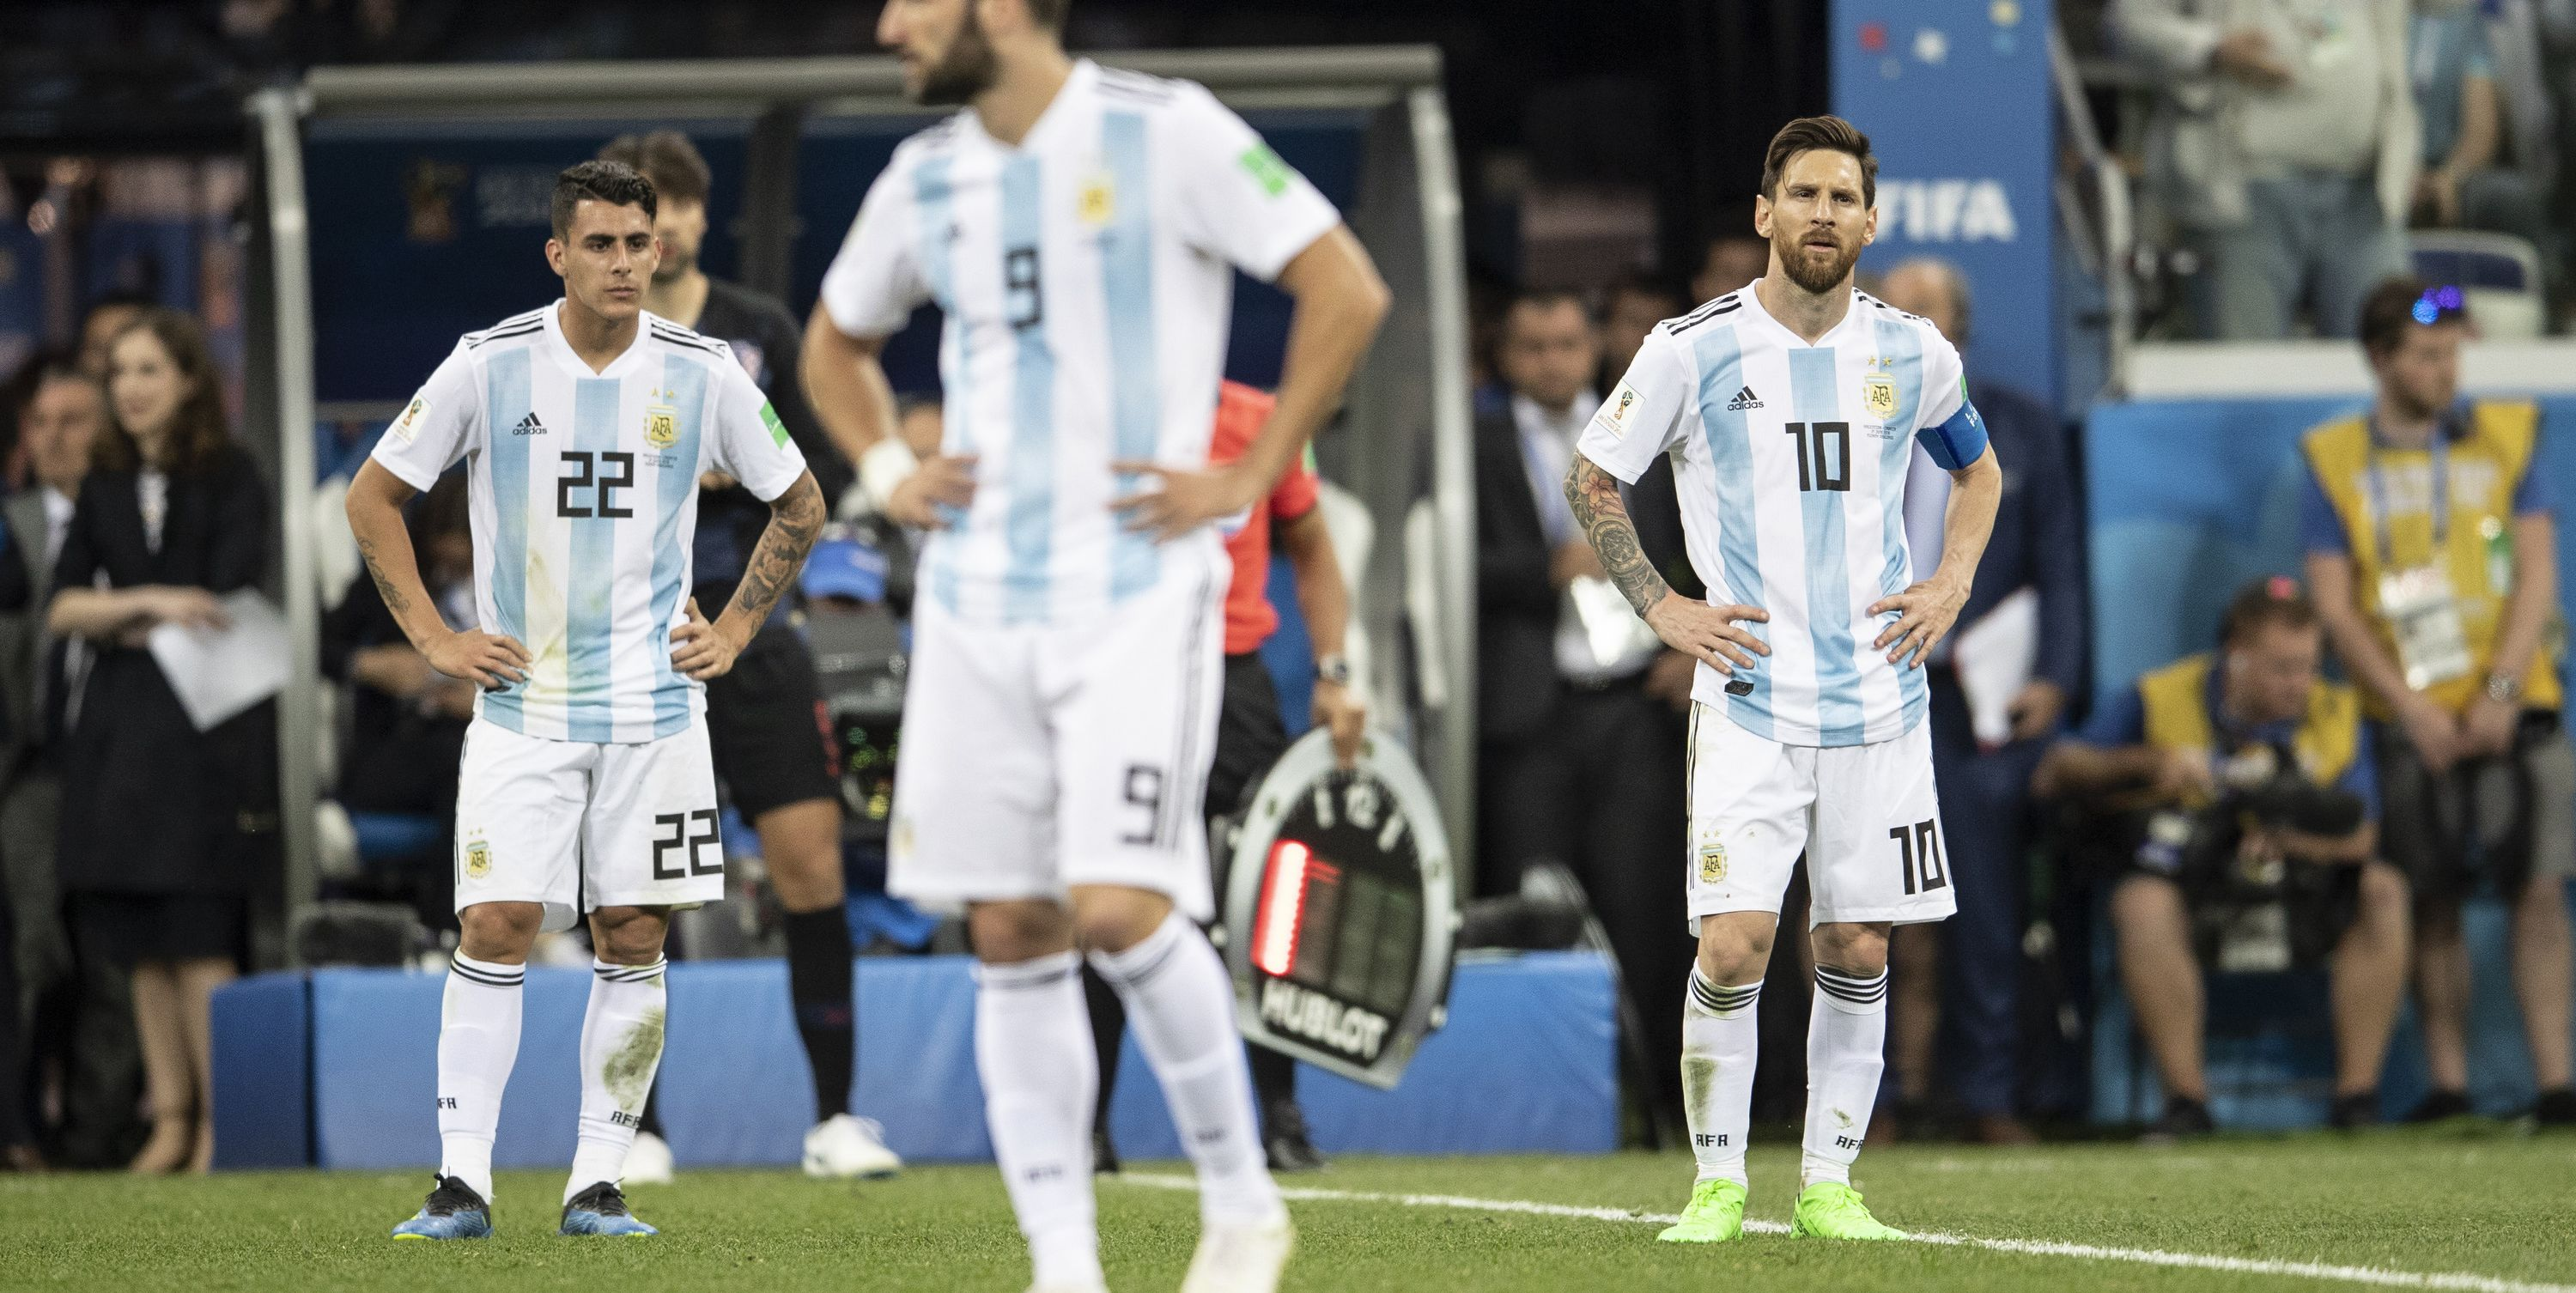 Lionel Messi Gonzalo Higuain Argentina World Cup